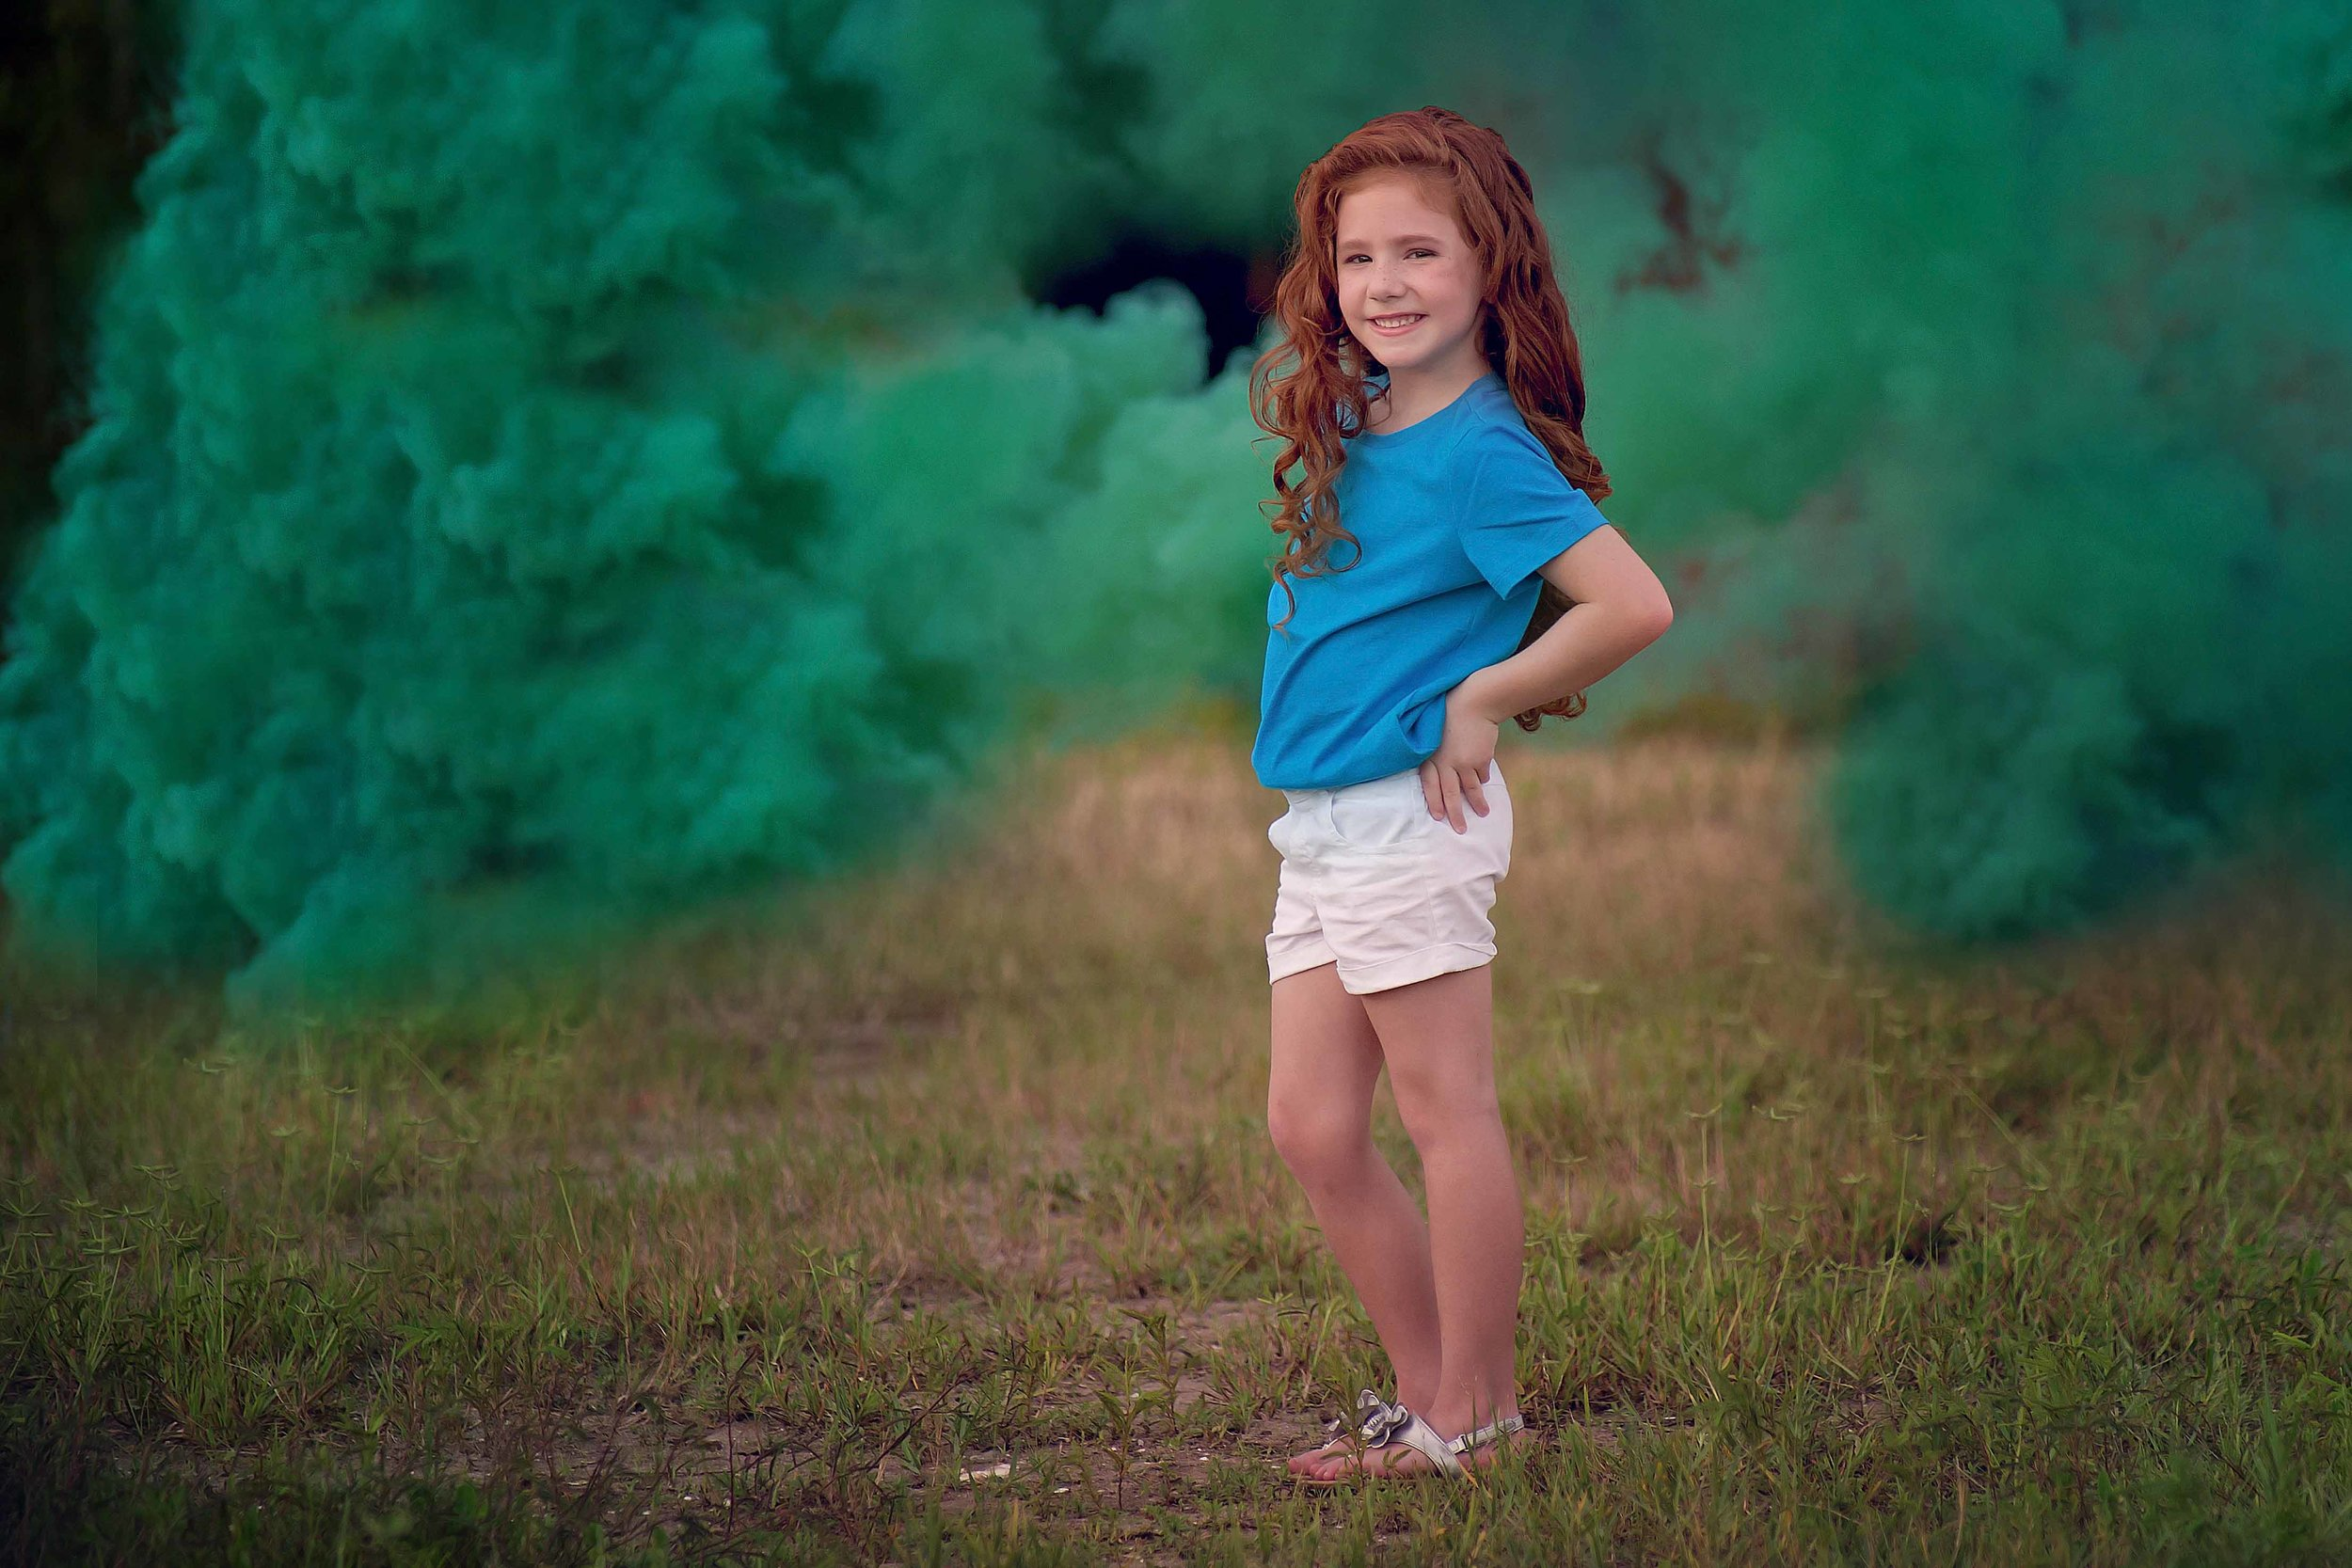 sarasota fl childrens photographer.jpg